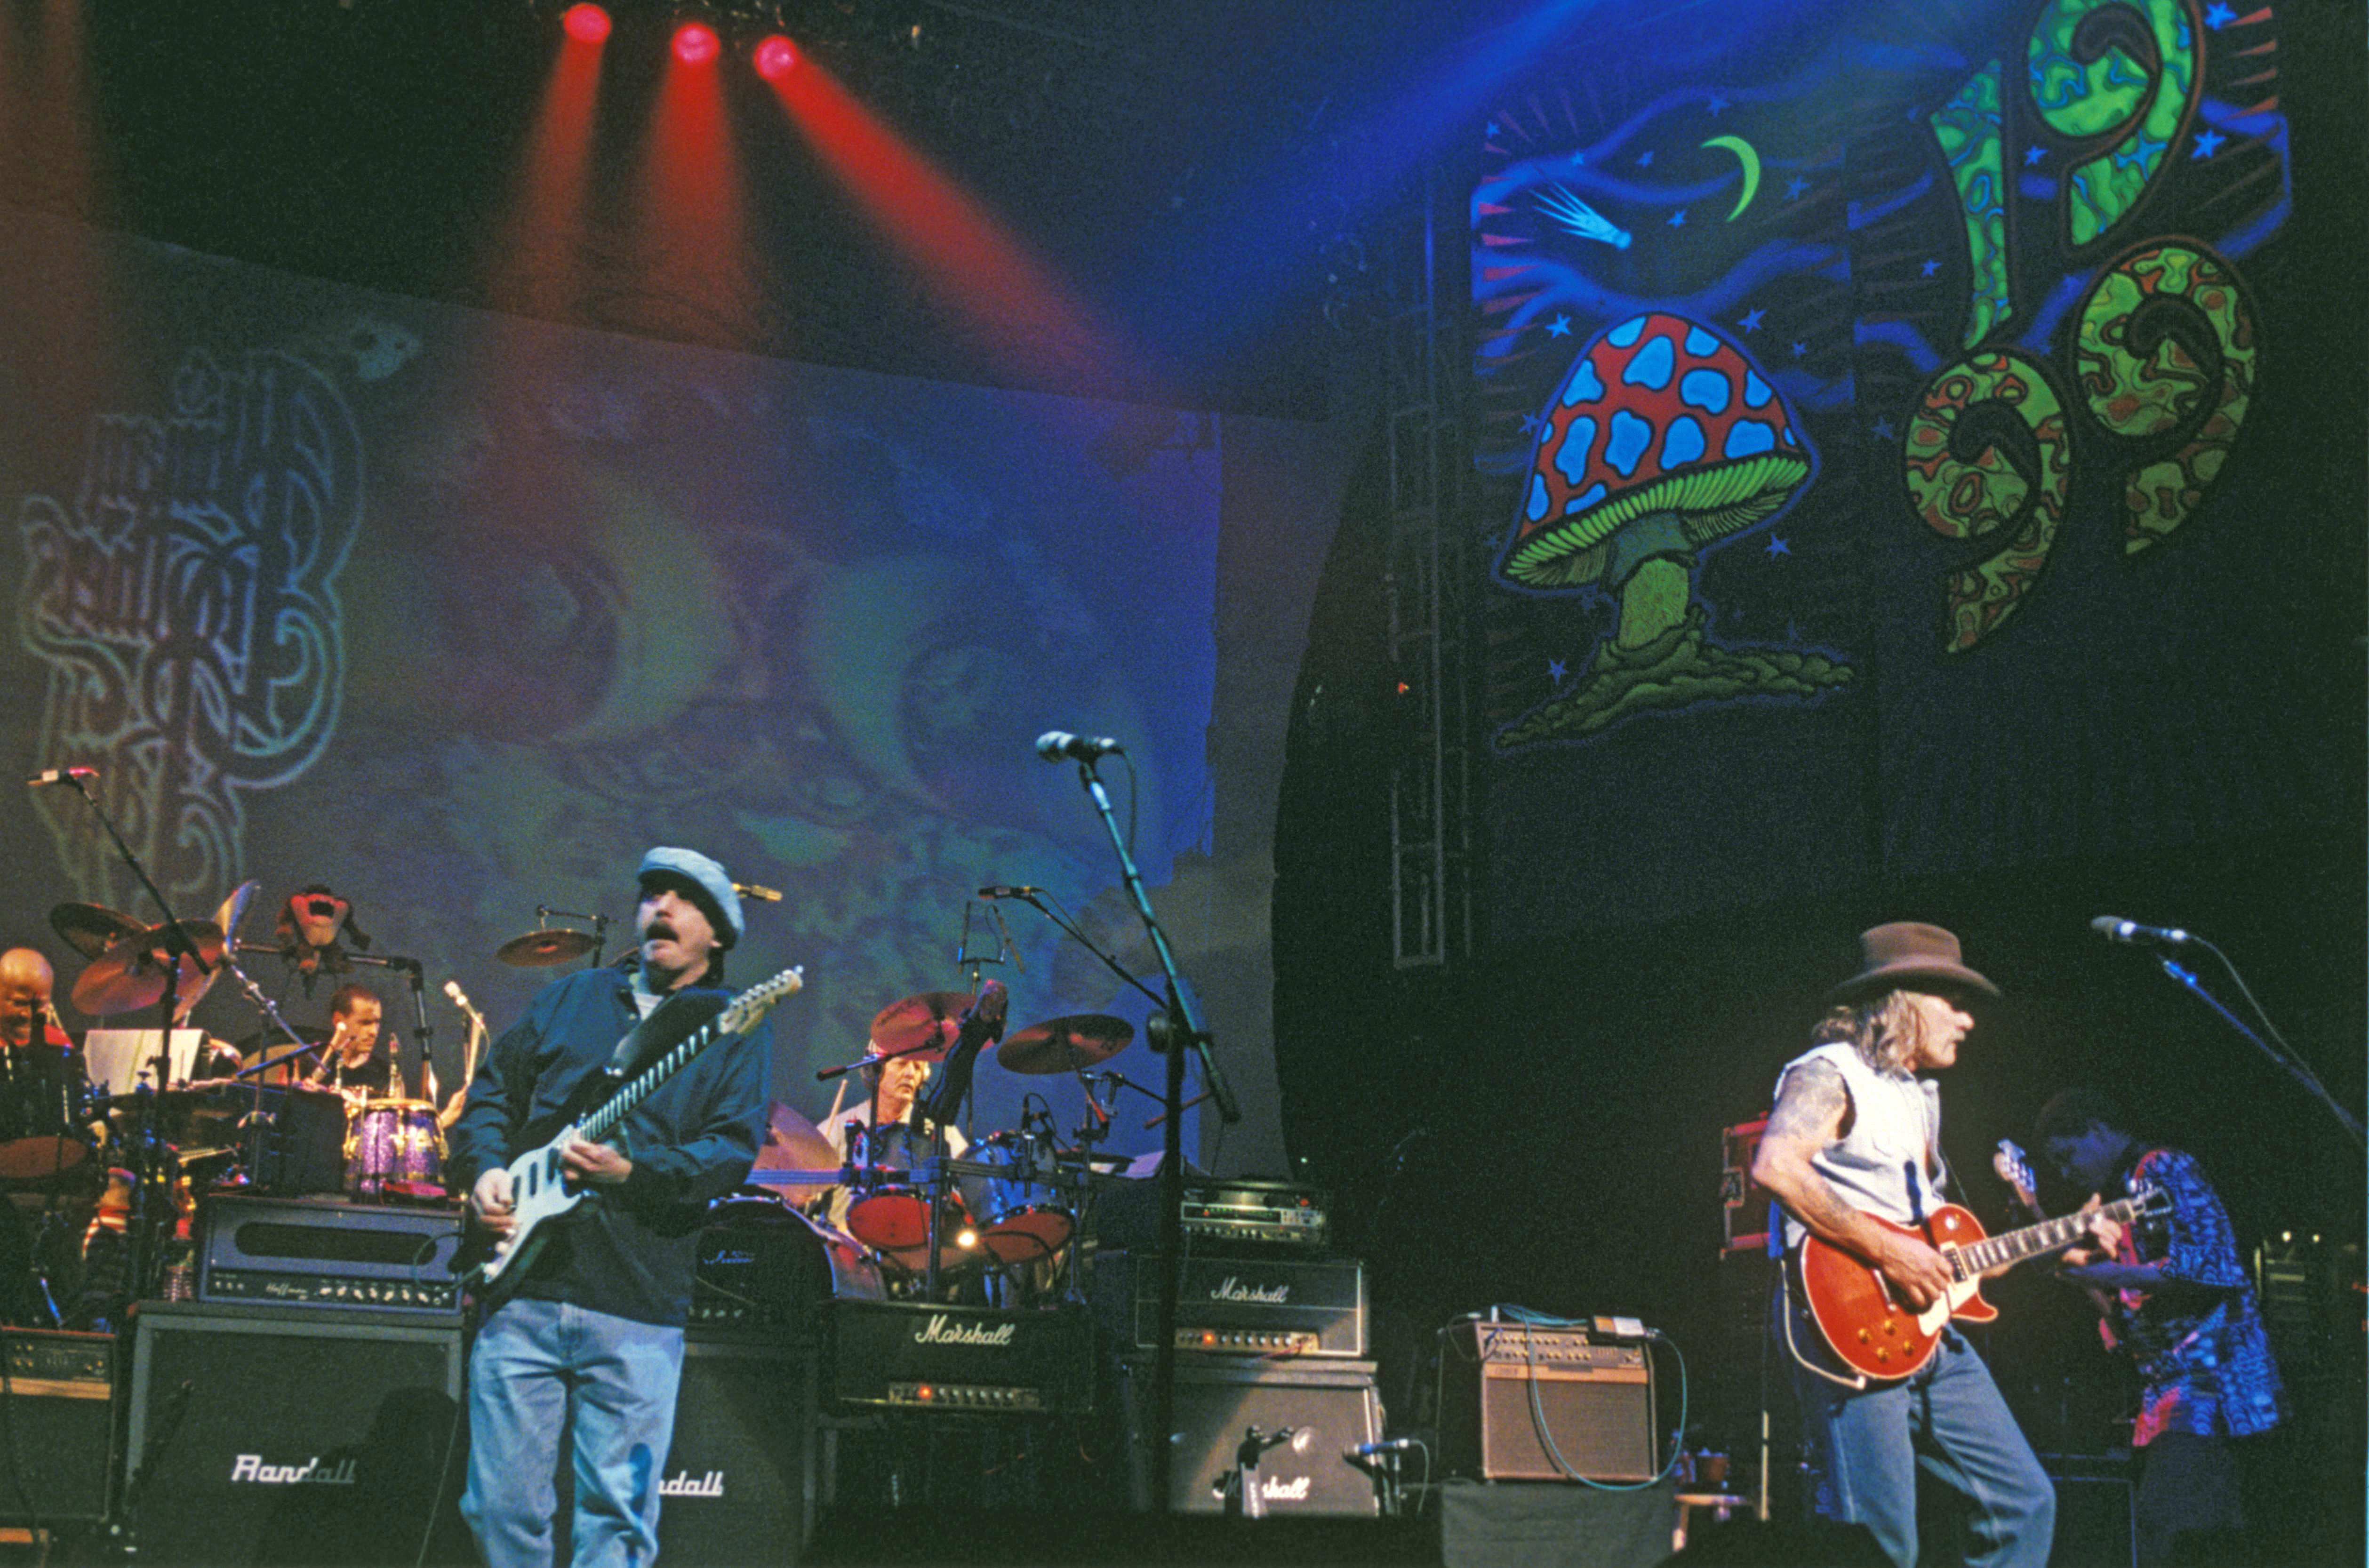 The allman brothers band 30 years of ups and downs rolling stone malvernweather Image collections